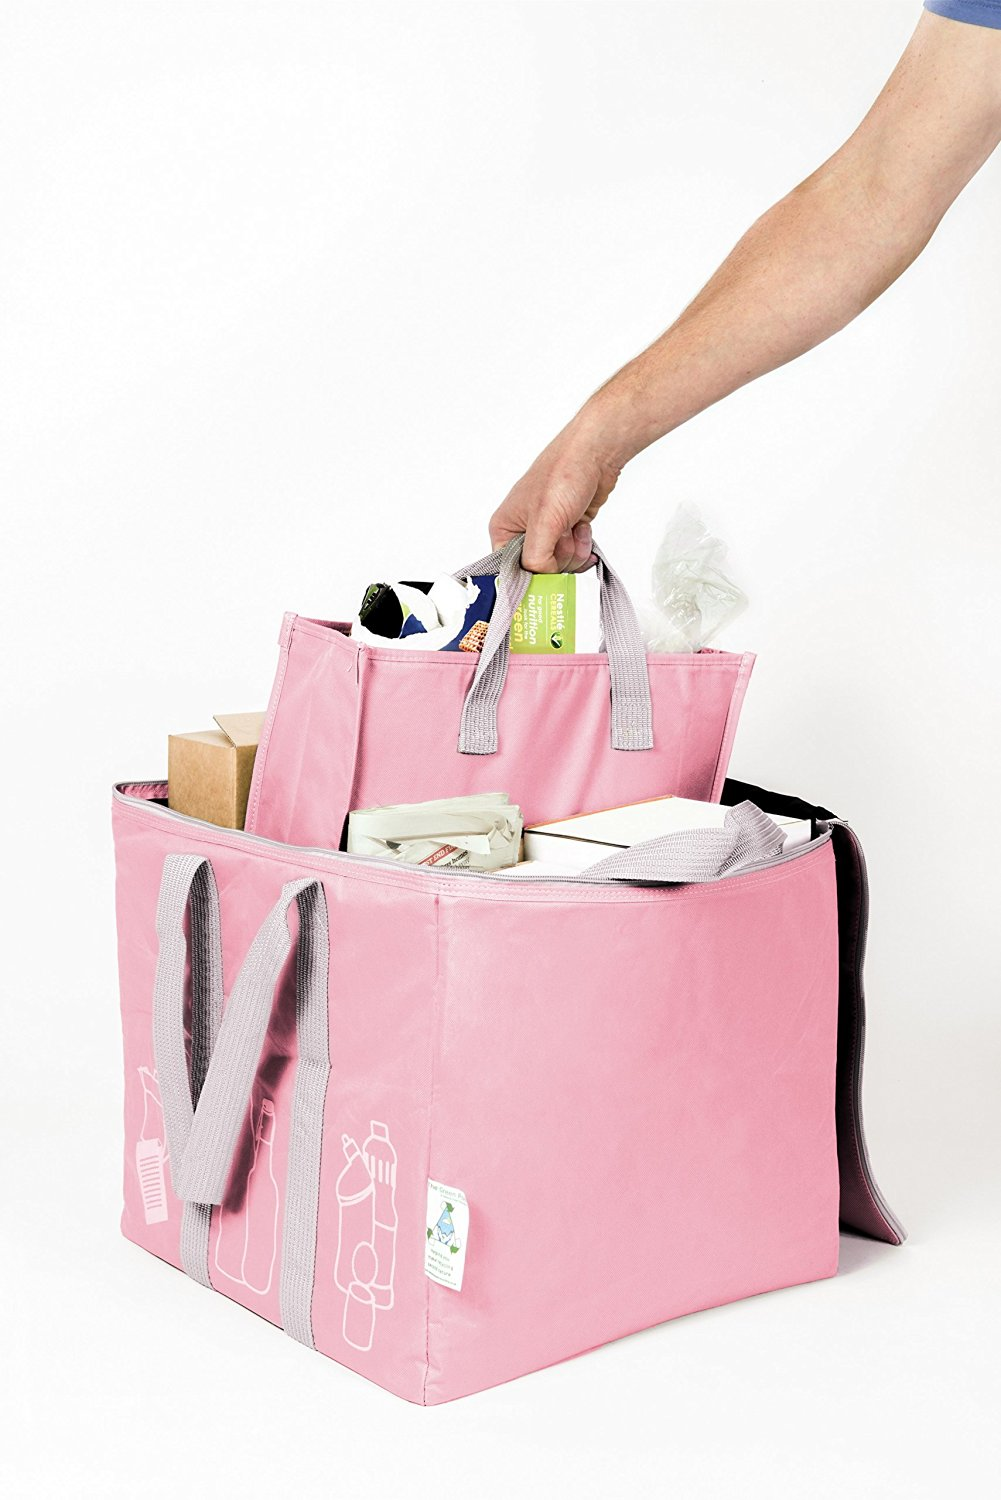 The Patented Green Pod Recycling Bag - with removable bags inside (Pink,50 Litre) by Element Green Recycling